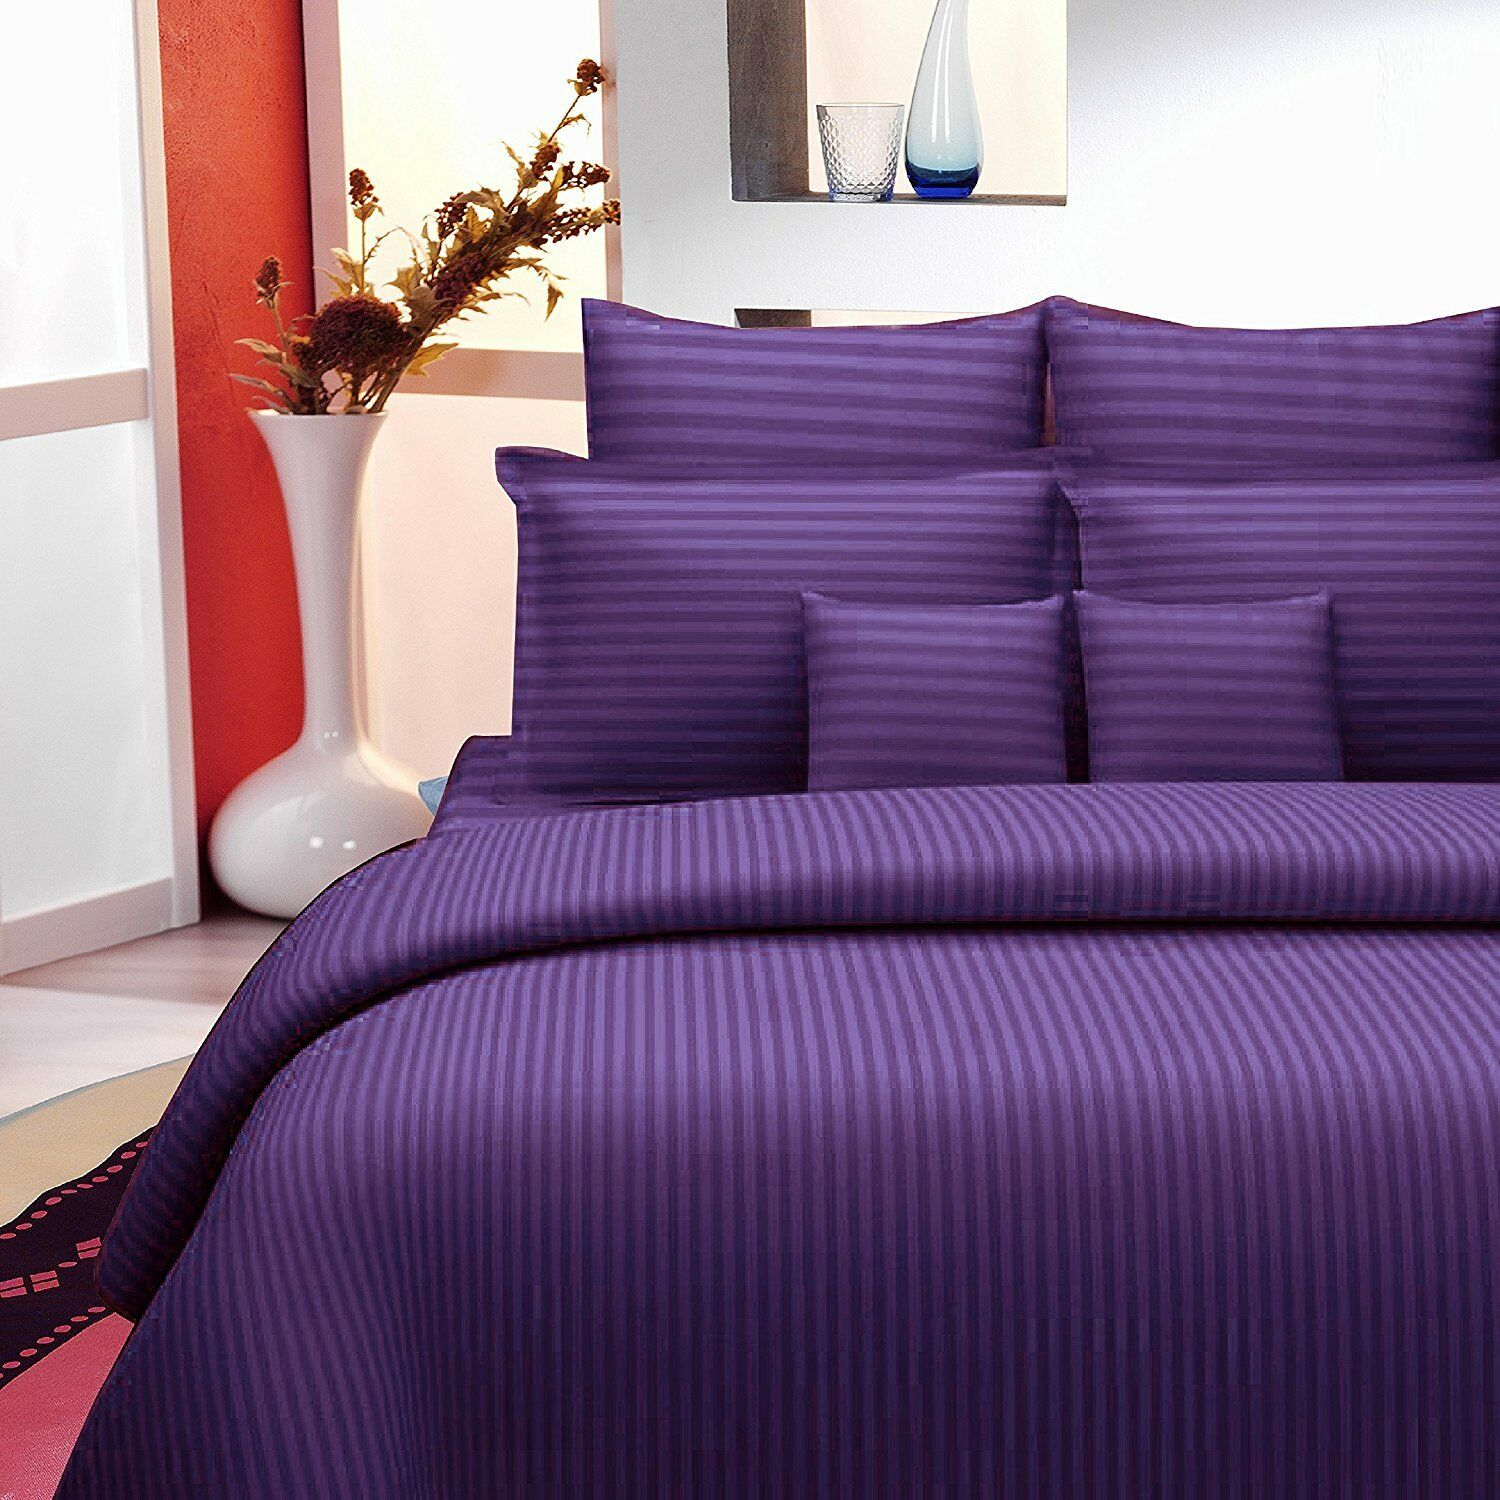 King Size Premium King Size Sheet Cotton Bed Spread With Pillow Case Coverlet